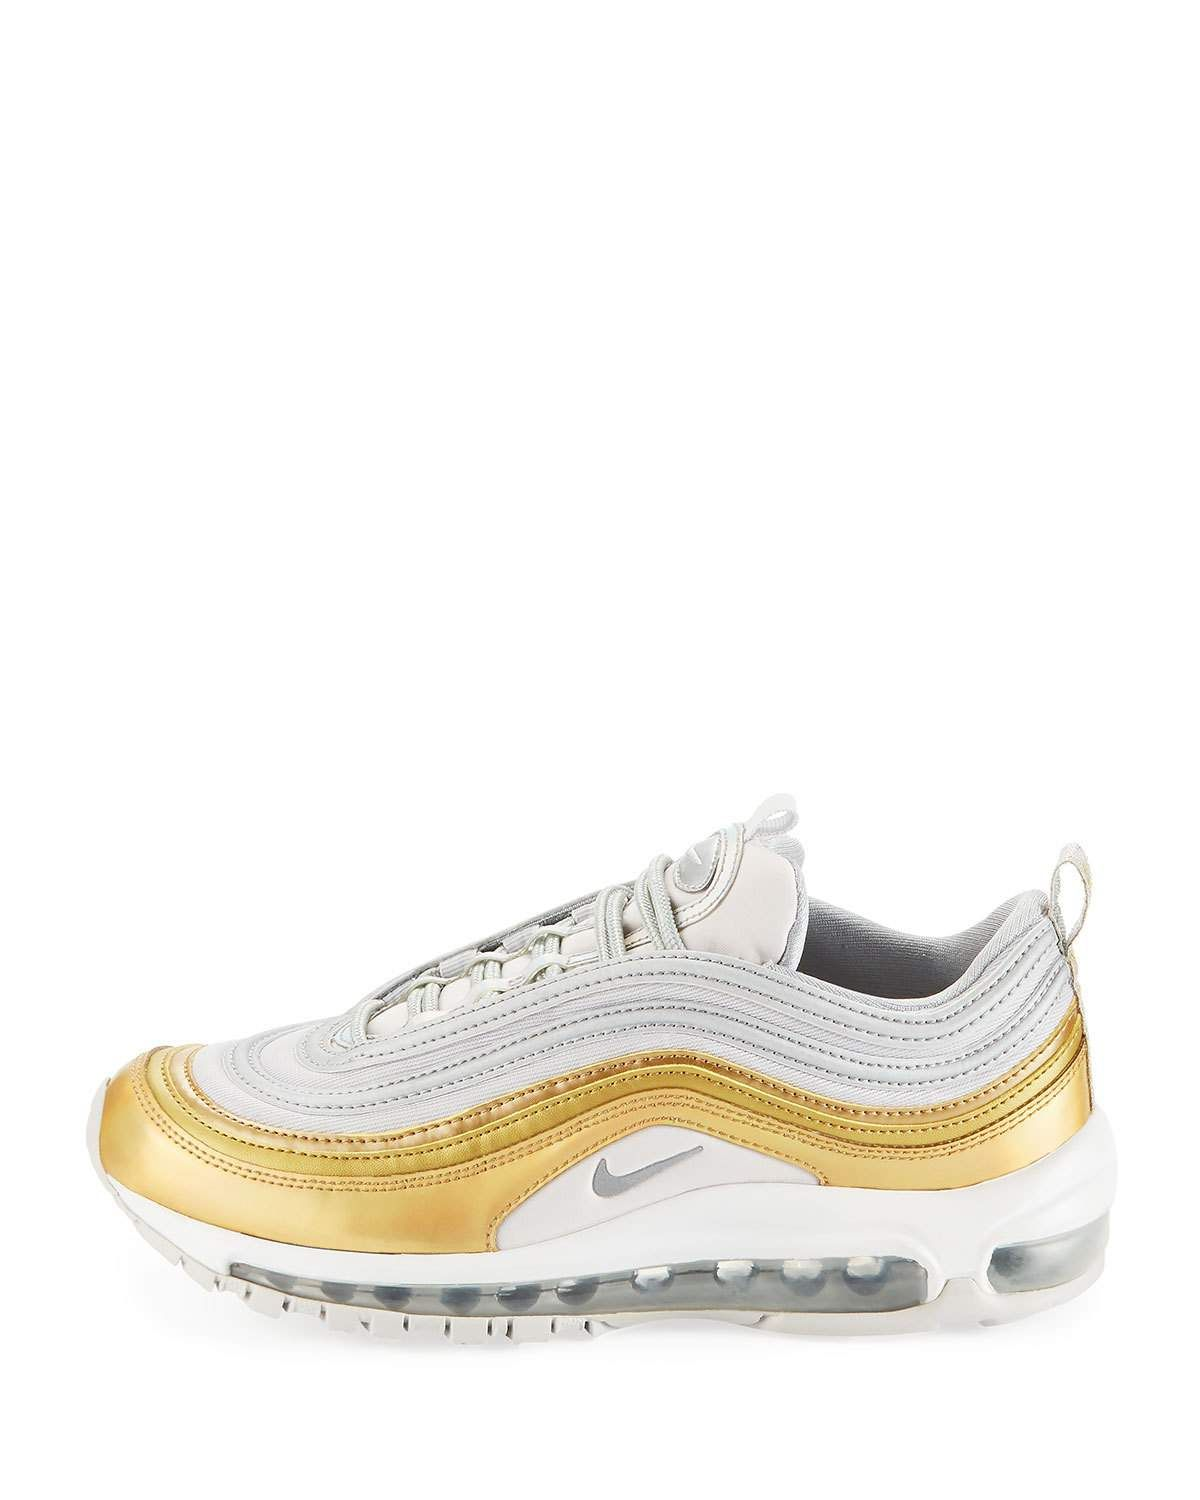 competitive price 619b8 2ca92 Nike Air Max 97 Special Edition Sneakers